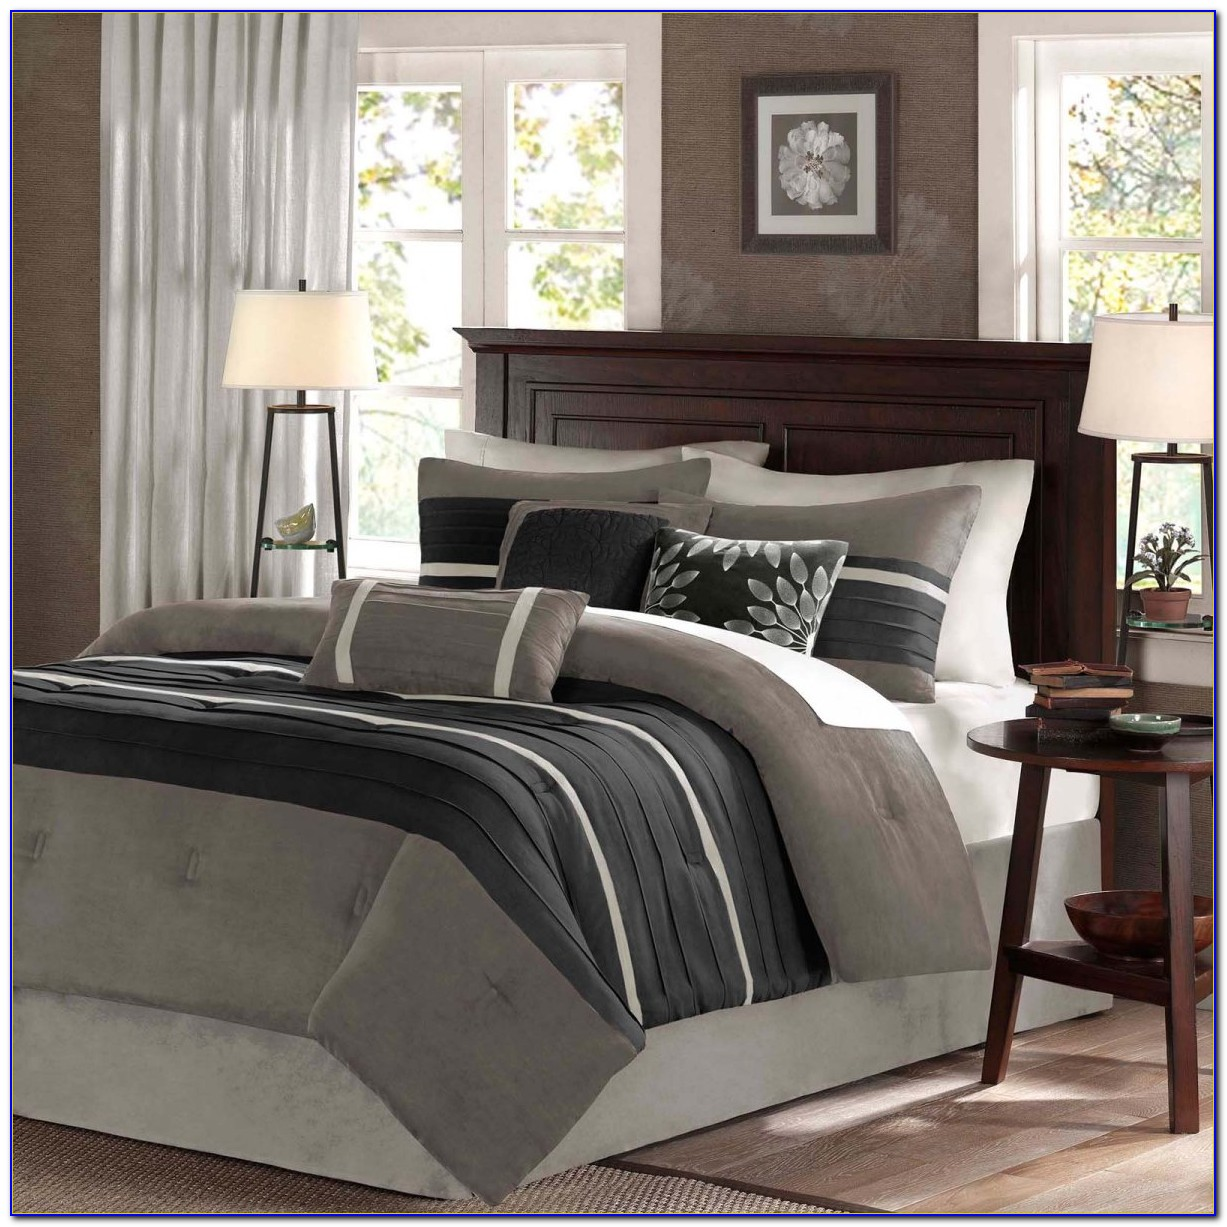 California King Bed Bedding Sets